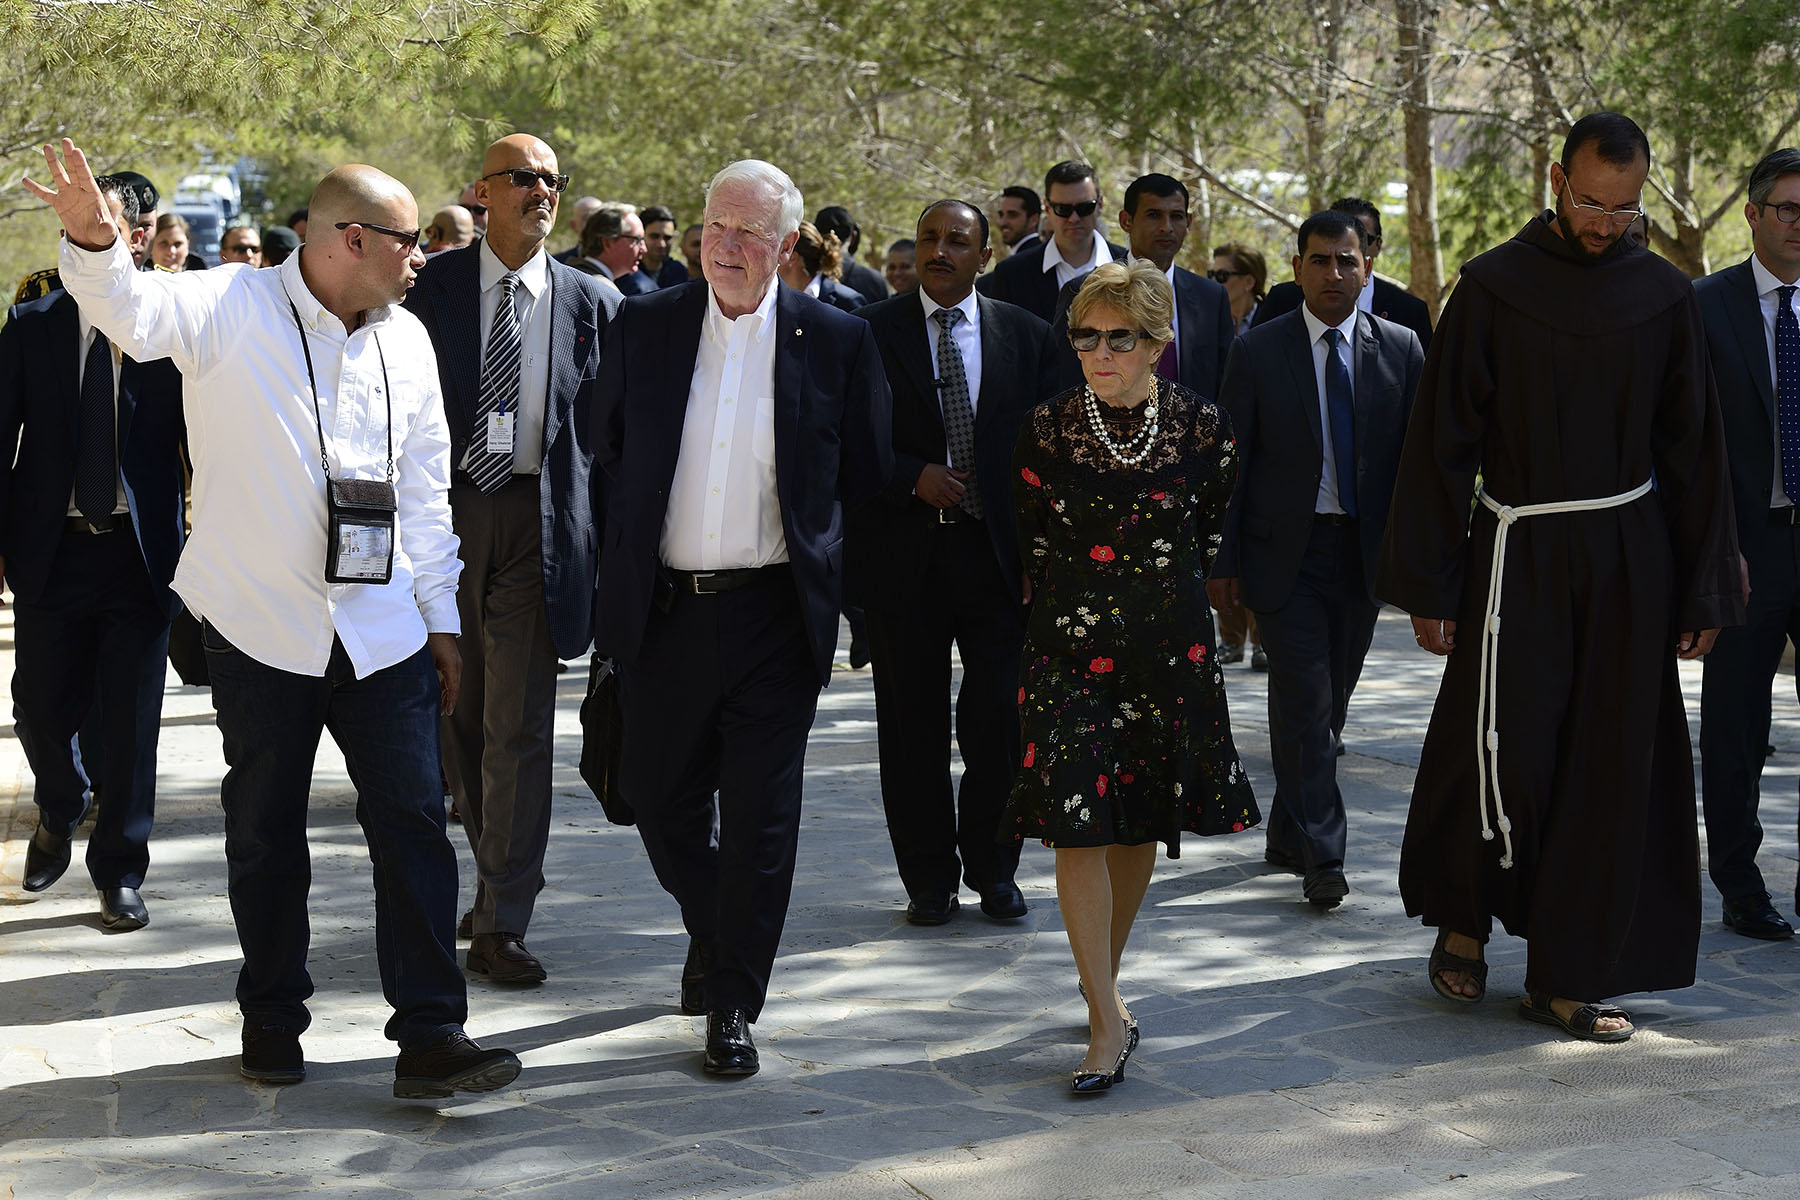 Their Excellencies visited Mount Nebo, one of the most revered holy sites of Jordan, located west of the Roman Byzantine town of Madaba.